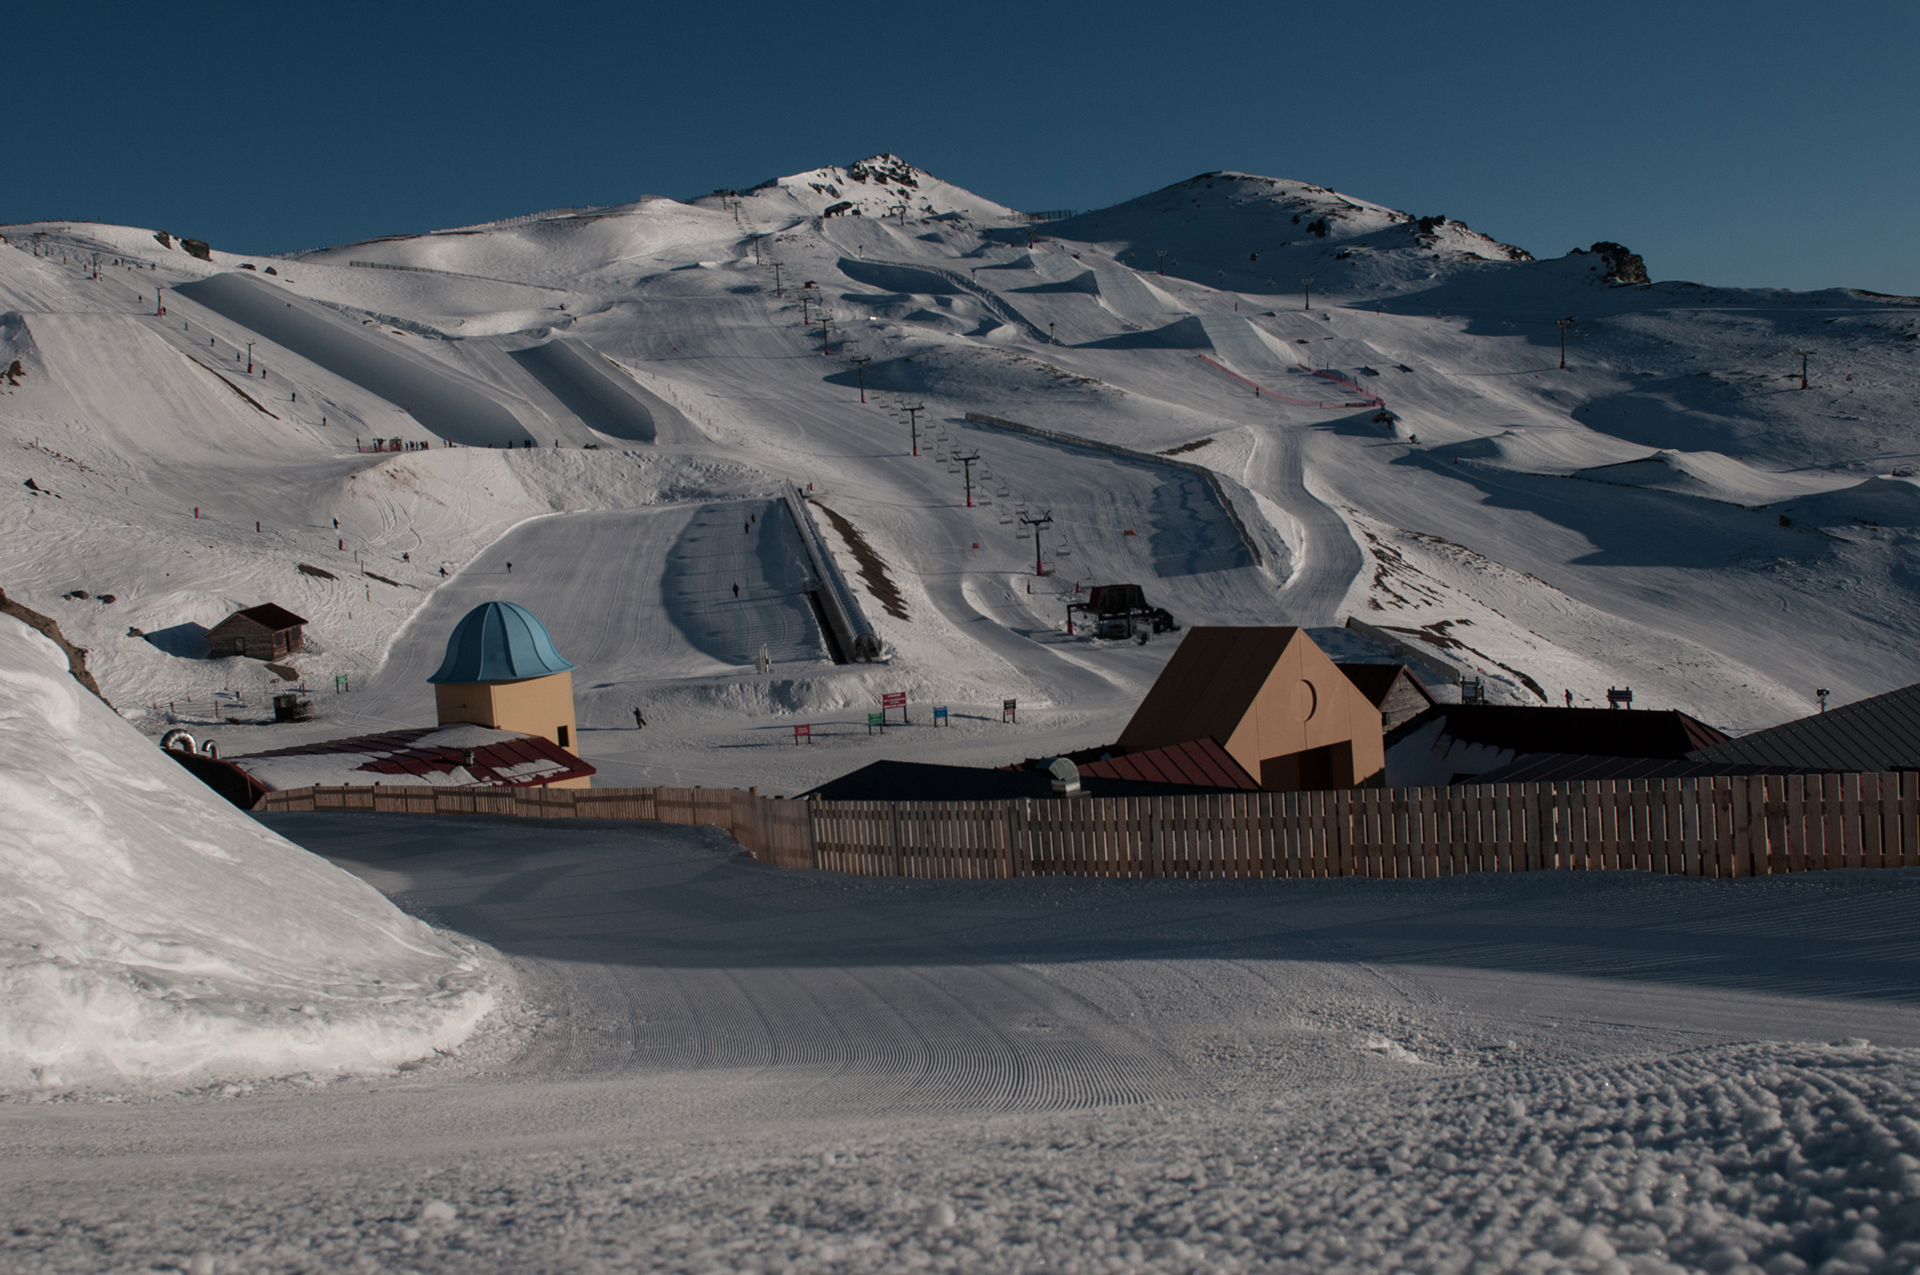 Cardrona Alpine Resort Base